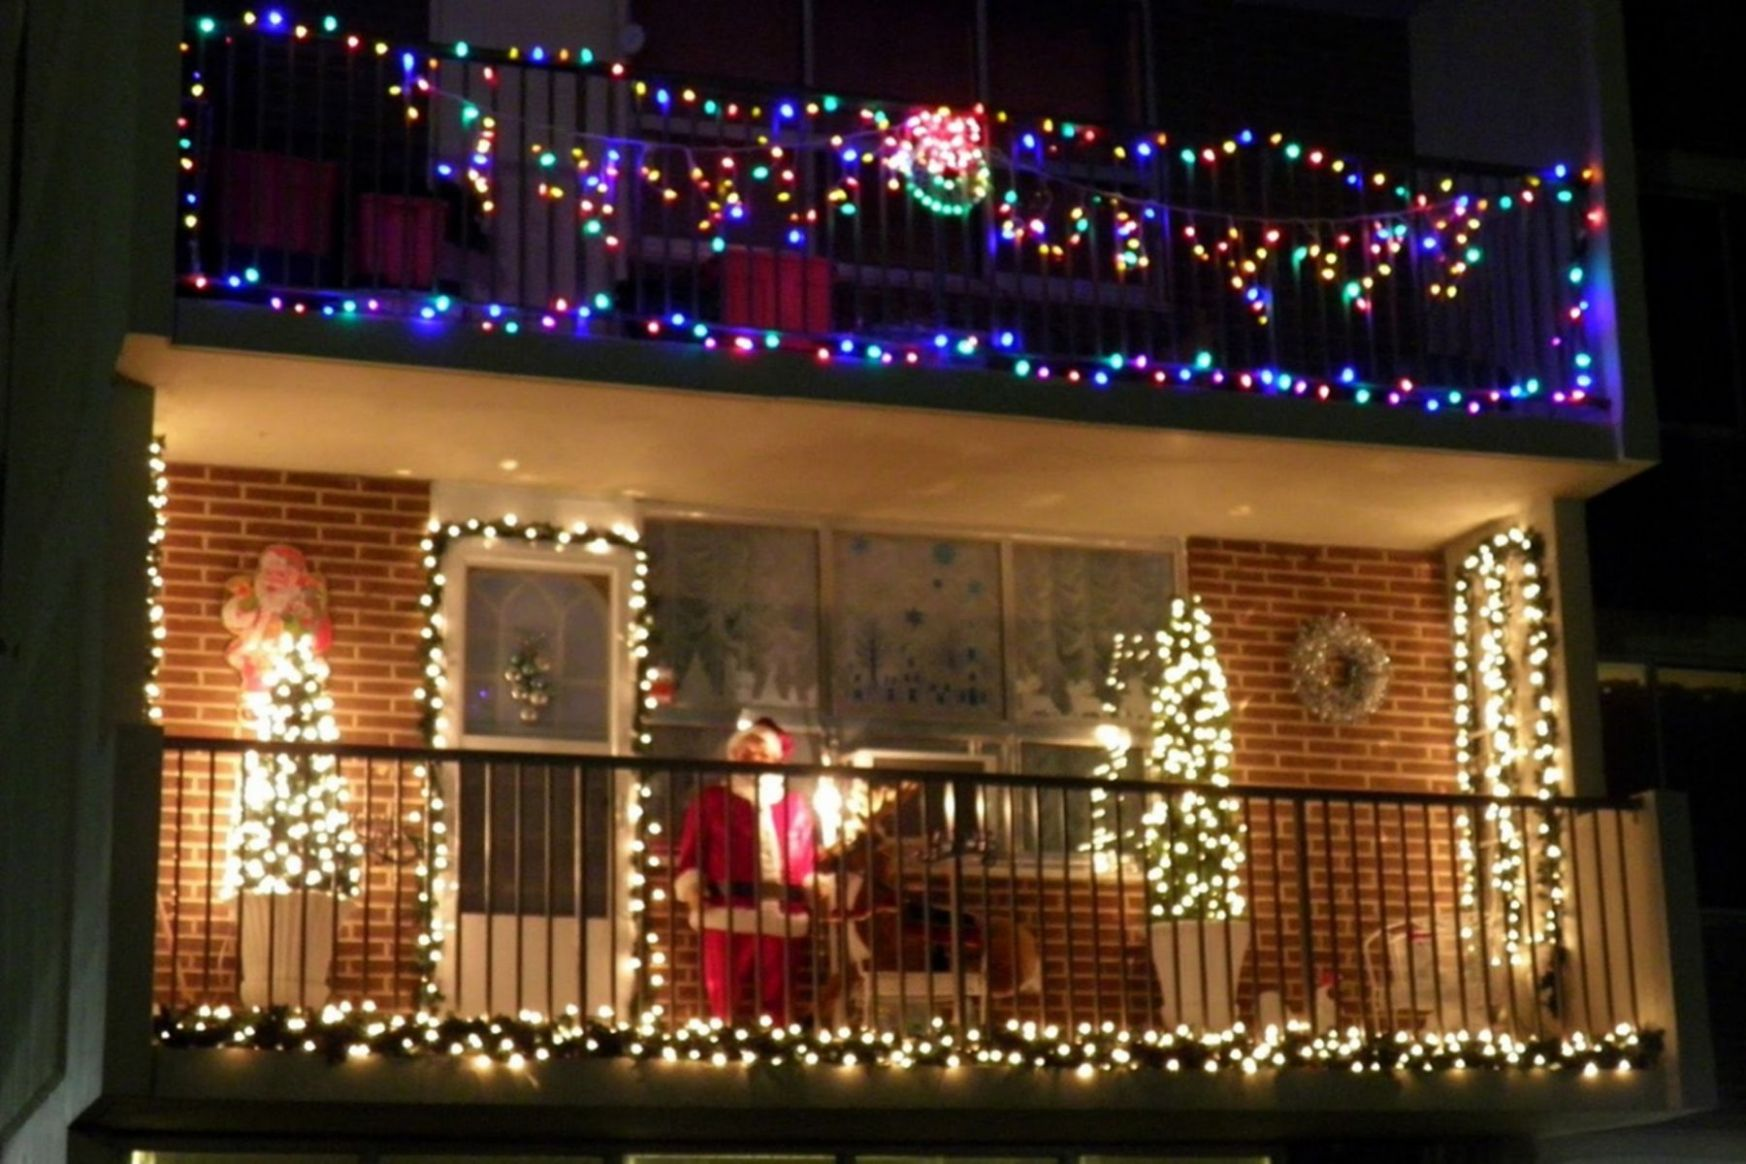 10 Cool Christmas Lights Decorating Ideas For Balcony (With images ...